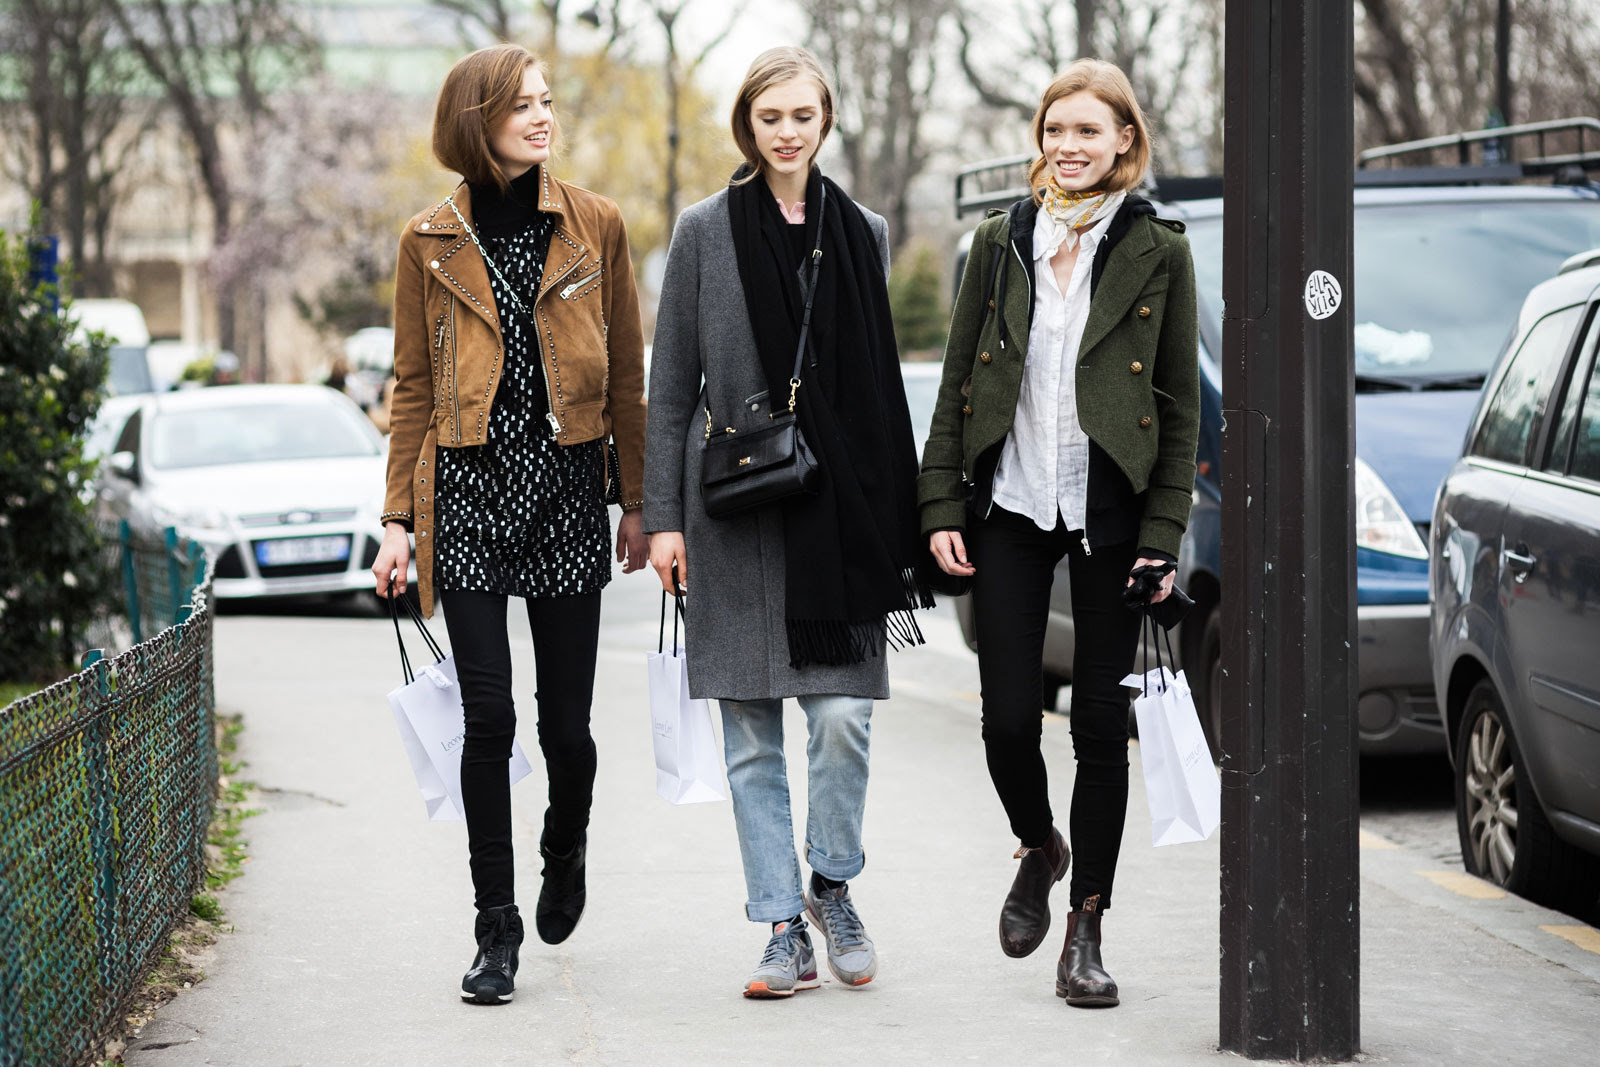 Models Emmy Rappe, Hedvig Palm and Julia Hafstrom after the Giambattista Valli Fall/Winter 2015-2016 fashion show in Paris, France